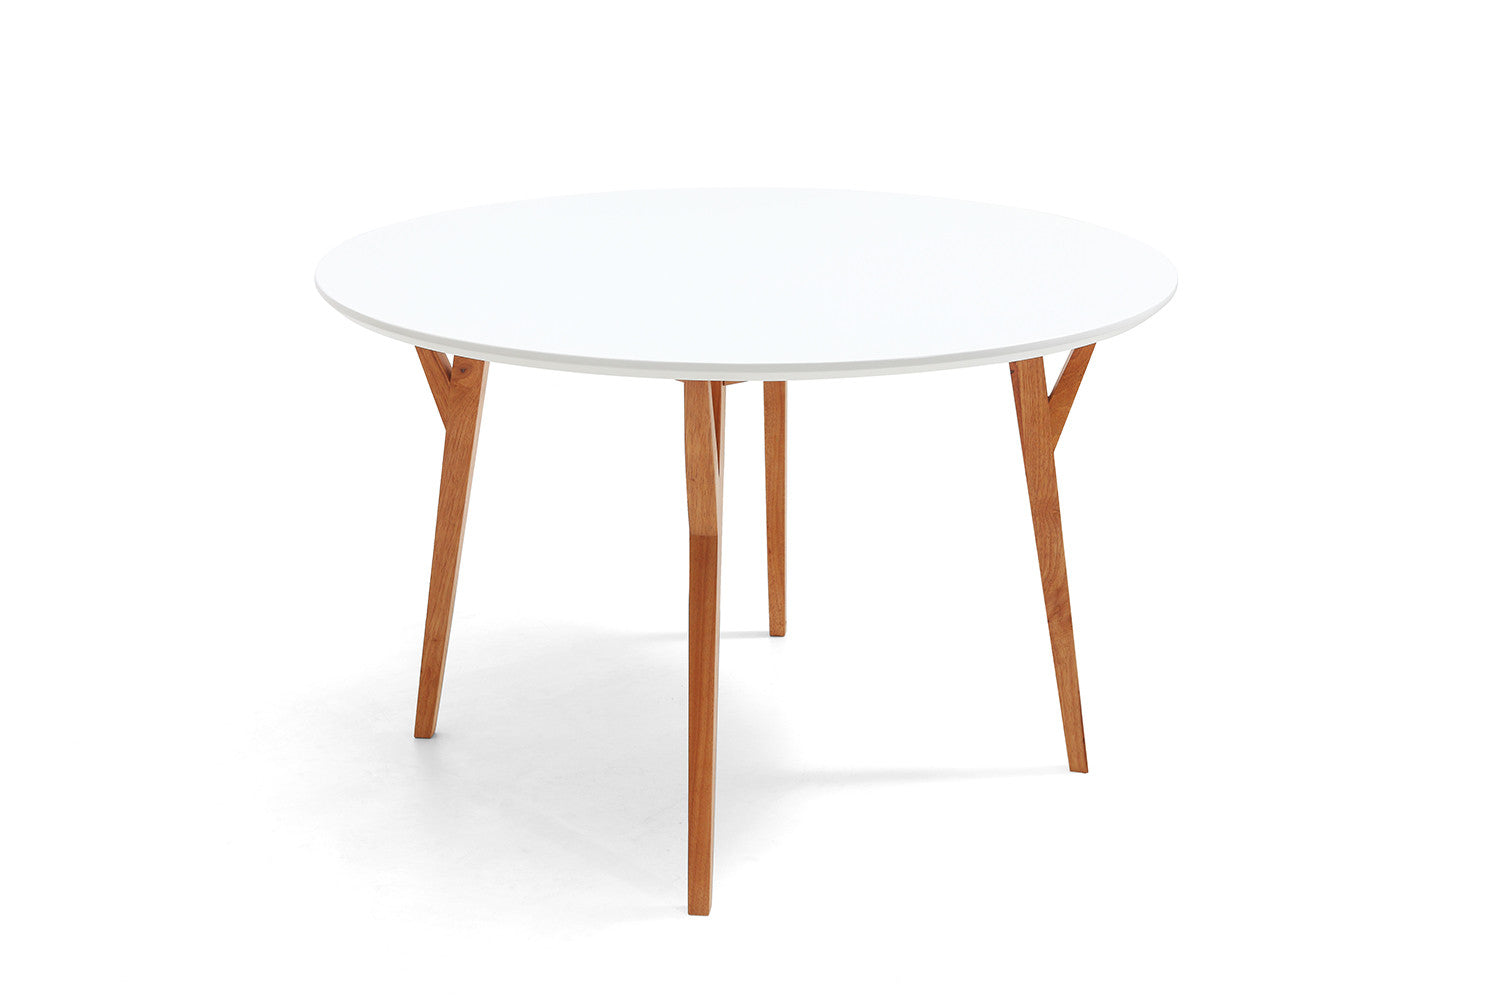 Table de salle manger ronde design scandinave moesa for Table salle manger ronde